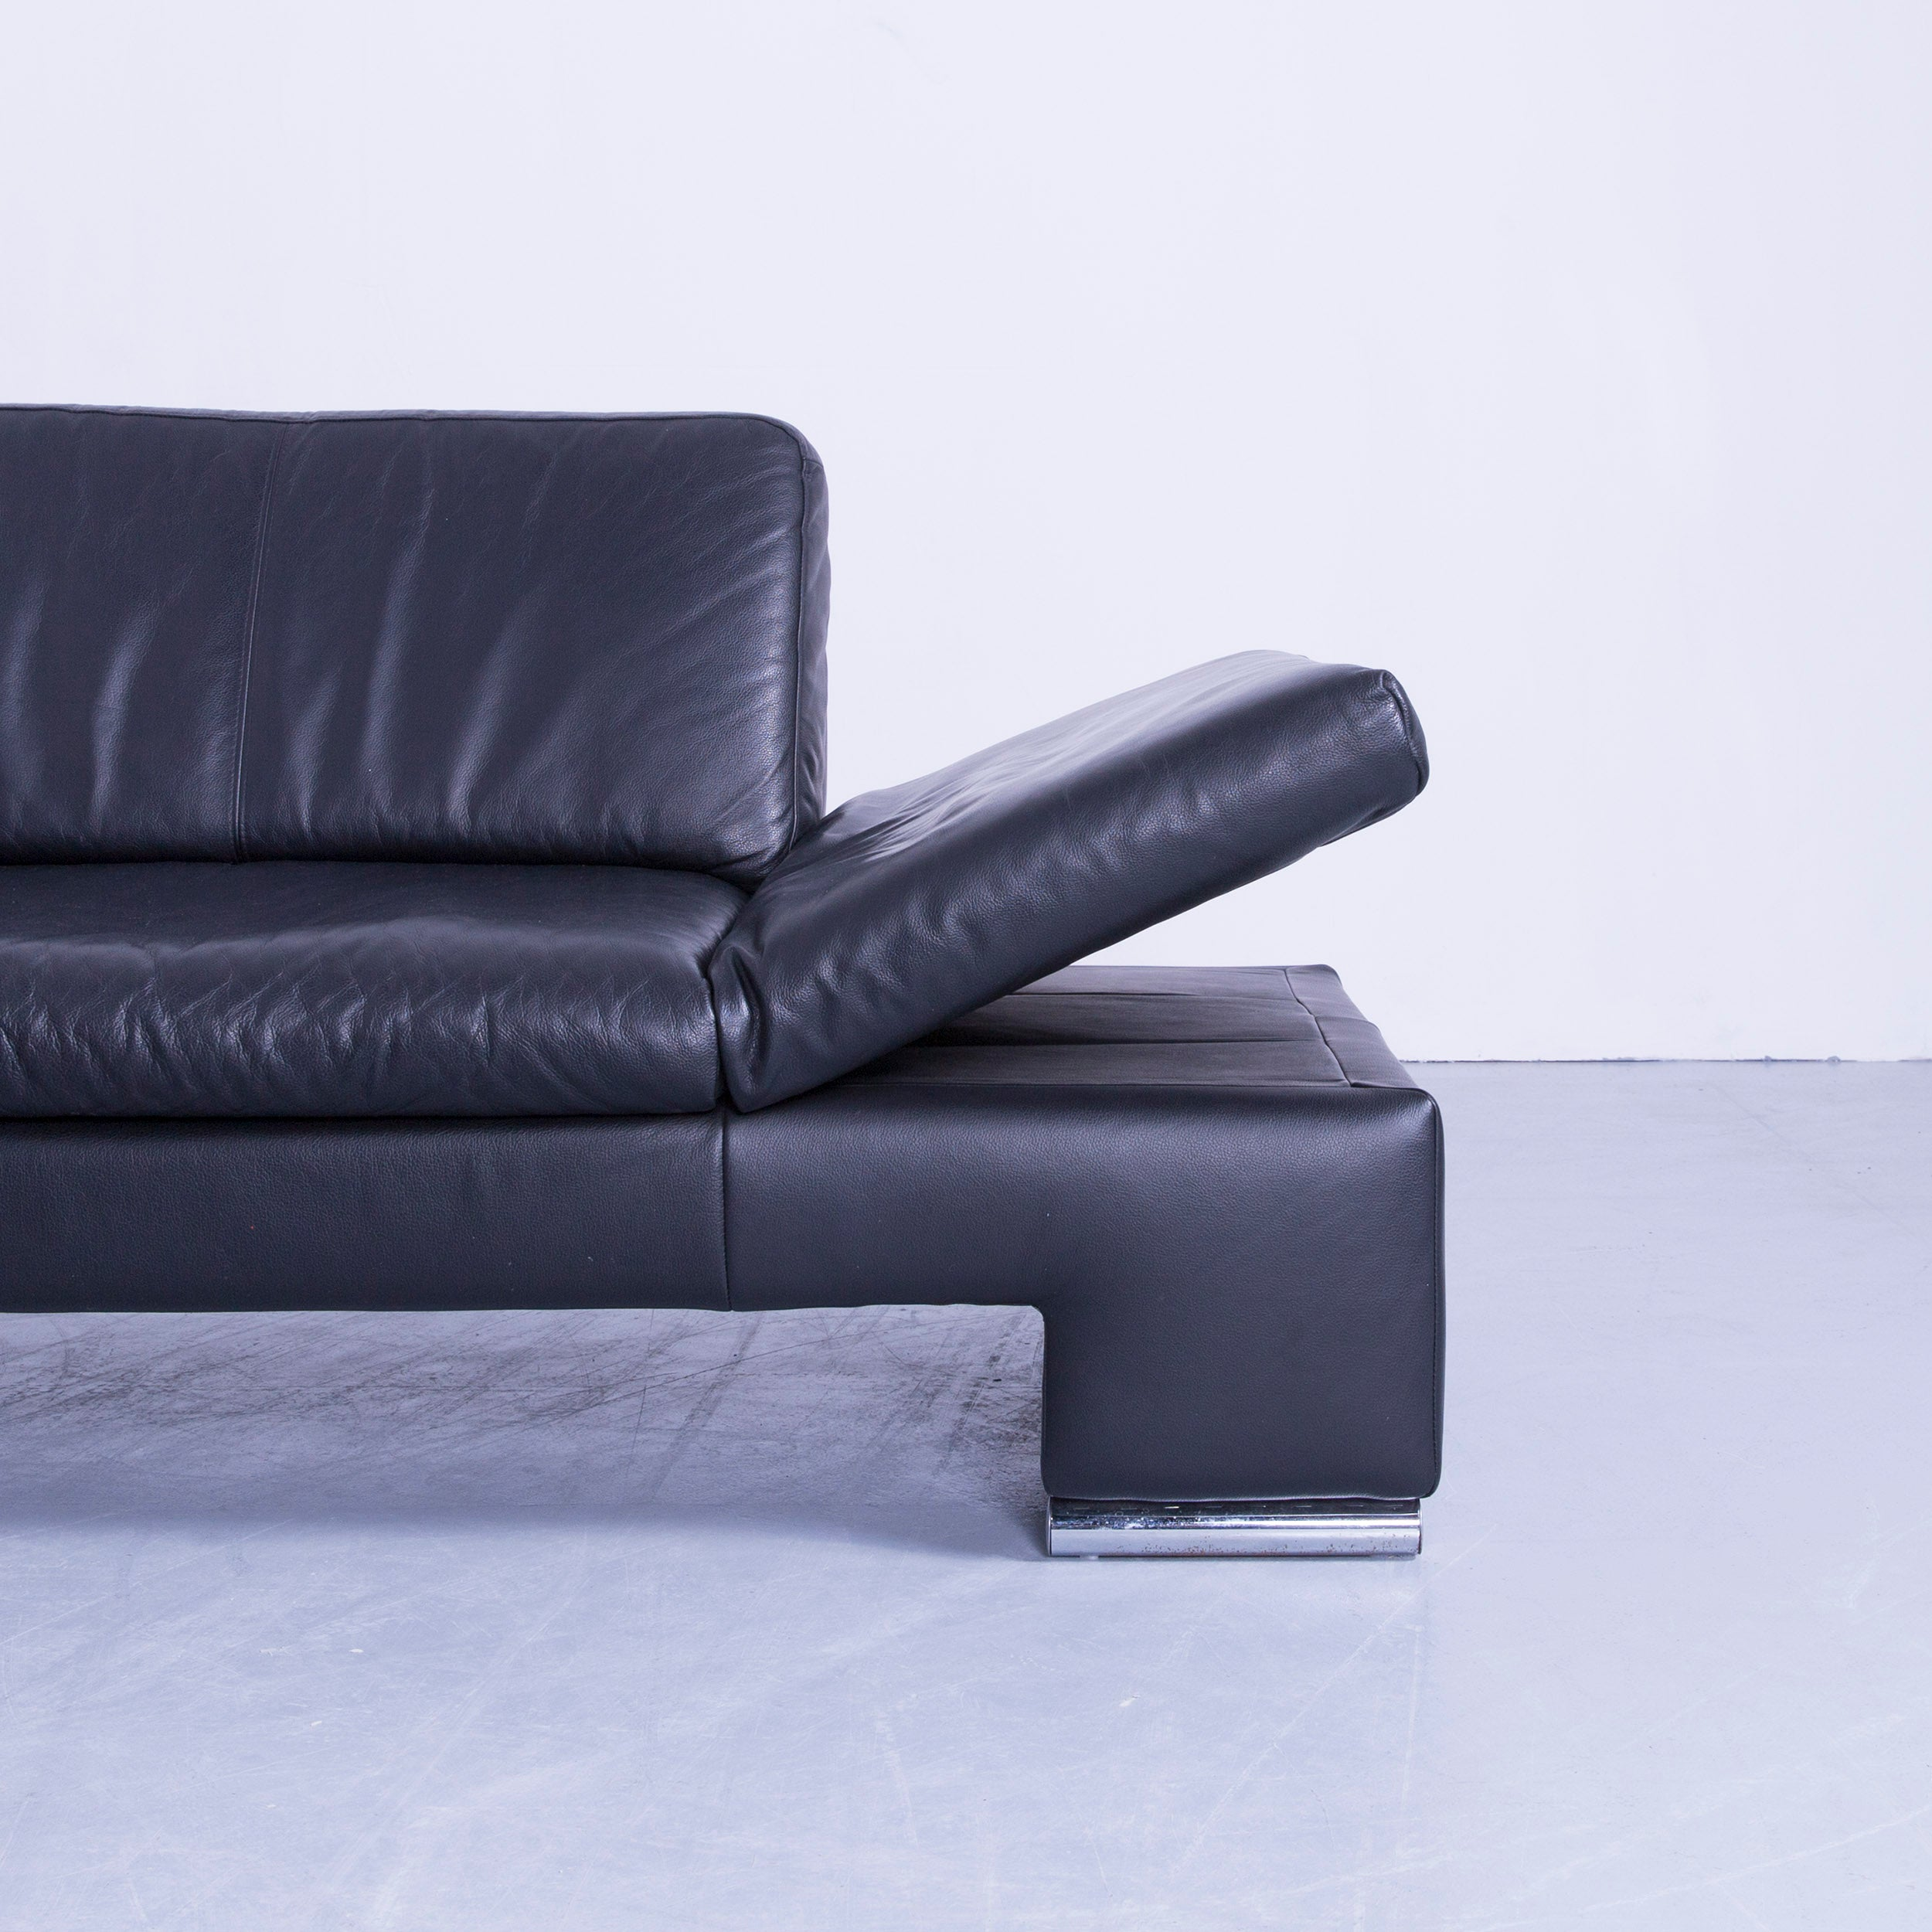 Cantus Sessel Polstermbel Cantus Interesting Simple Latest Ecksofa Leder